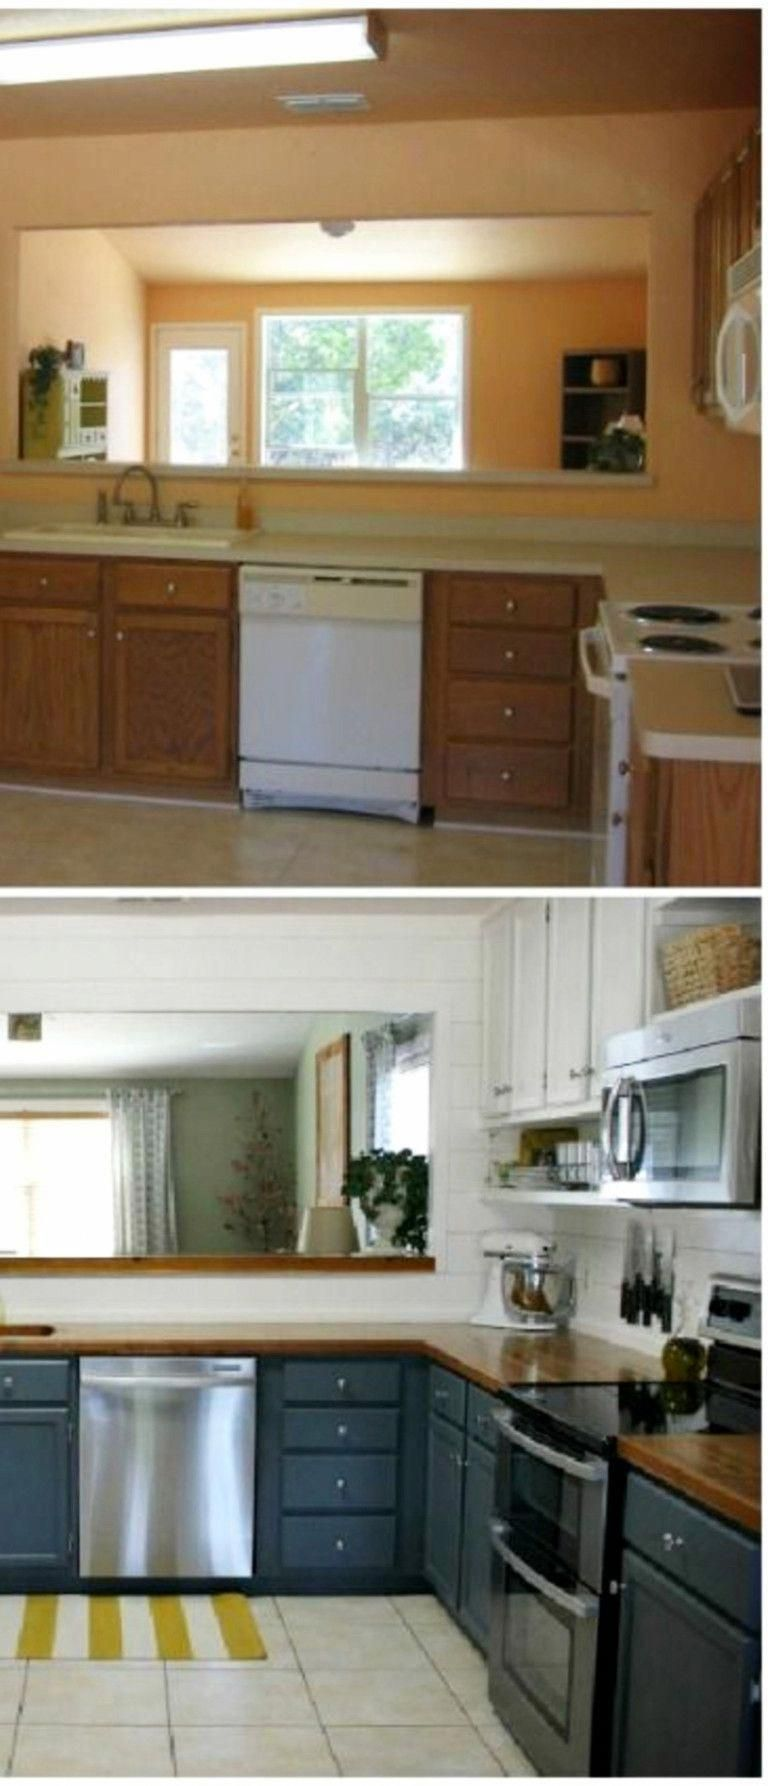 1960s Kitchen Remodel Before After: Before And After Pictures Of Small